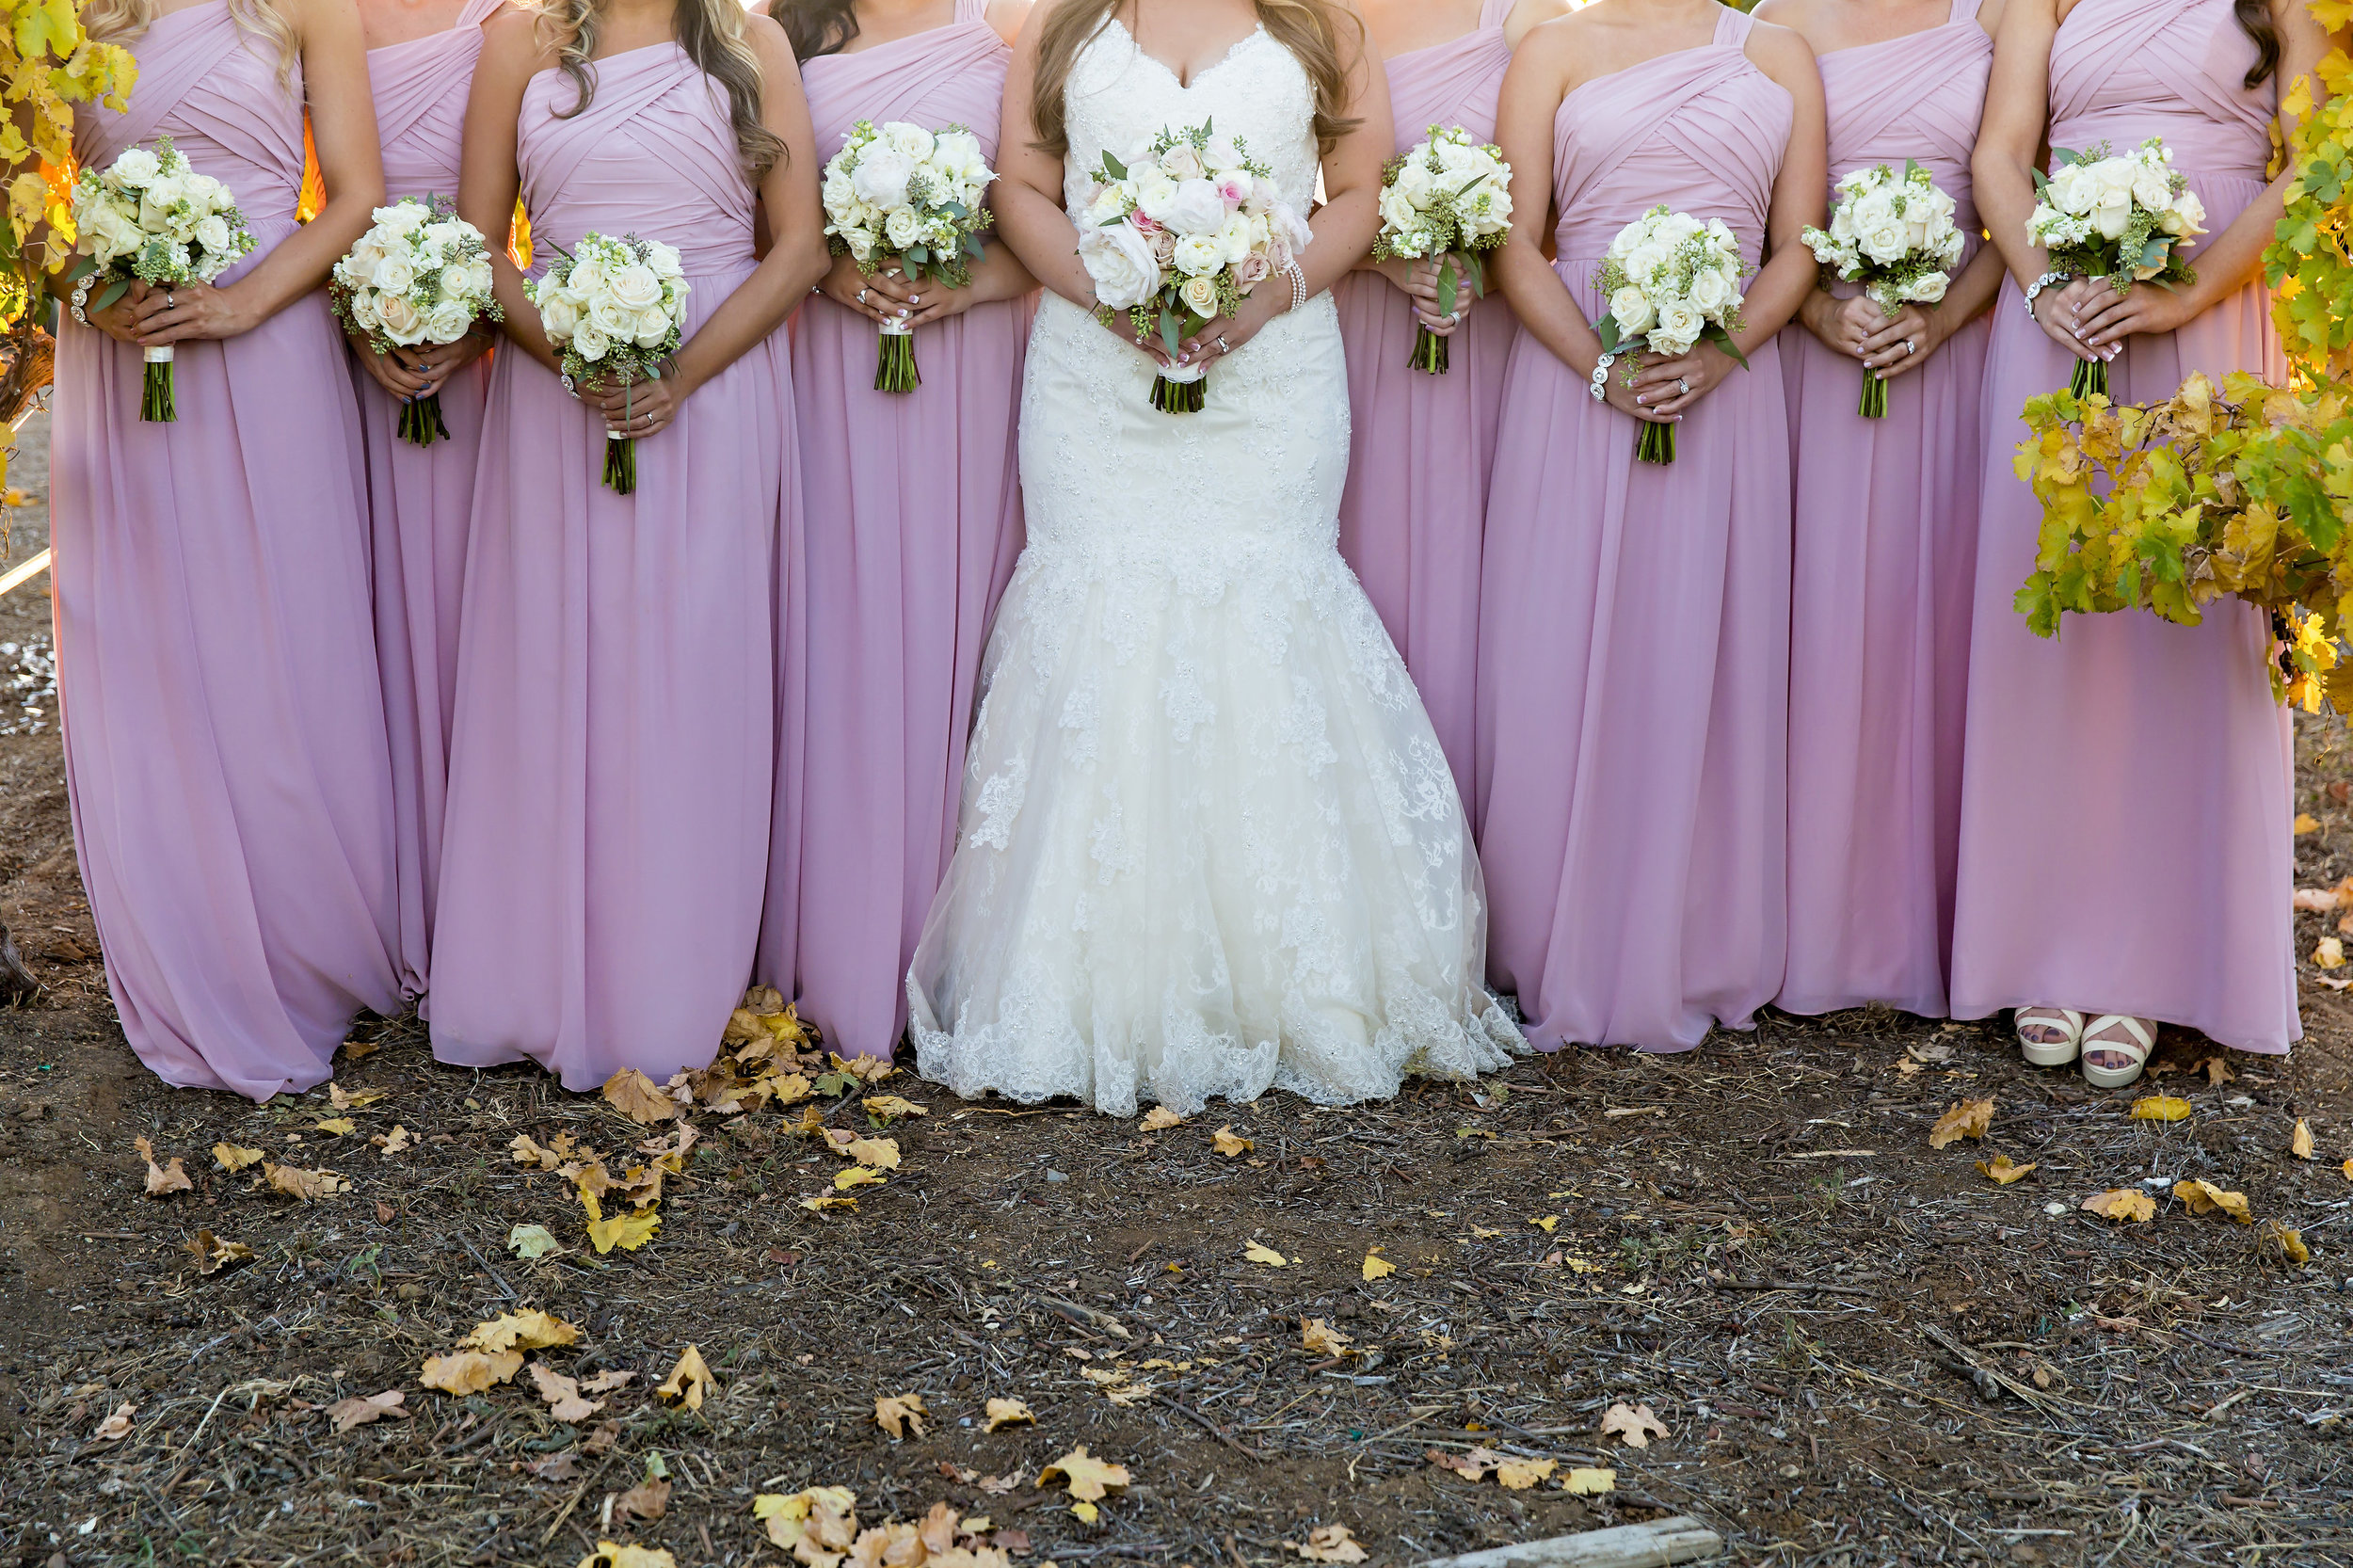 Pink Bridesmaid Dresses and White Bouquets | Temecula Private Estate Wedding | Michelle Garibay Events